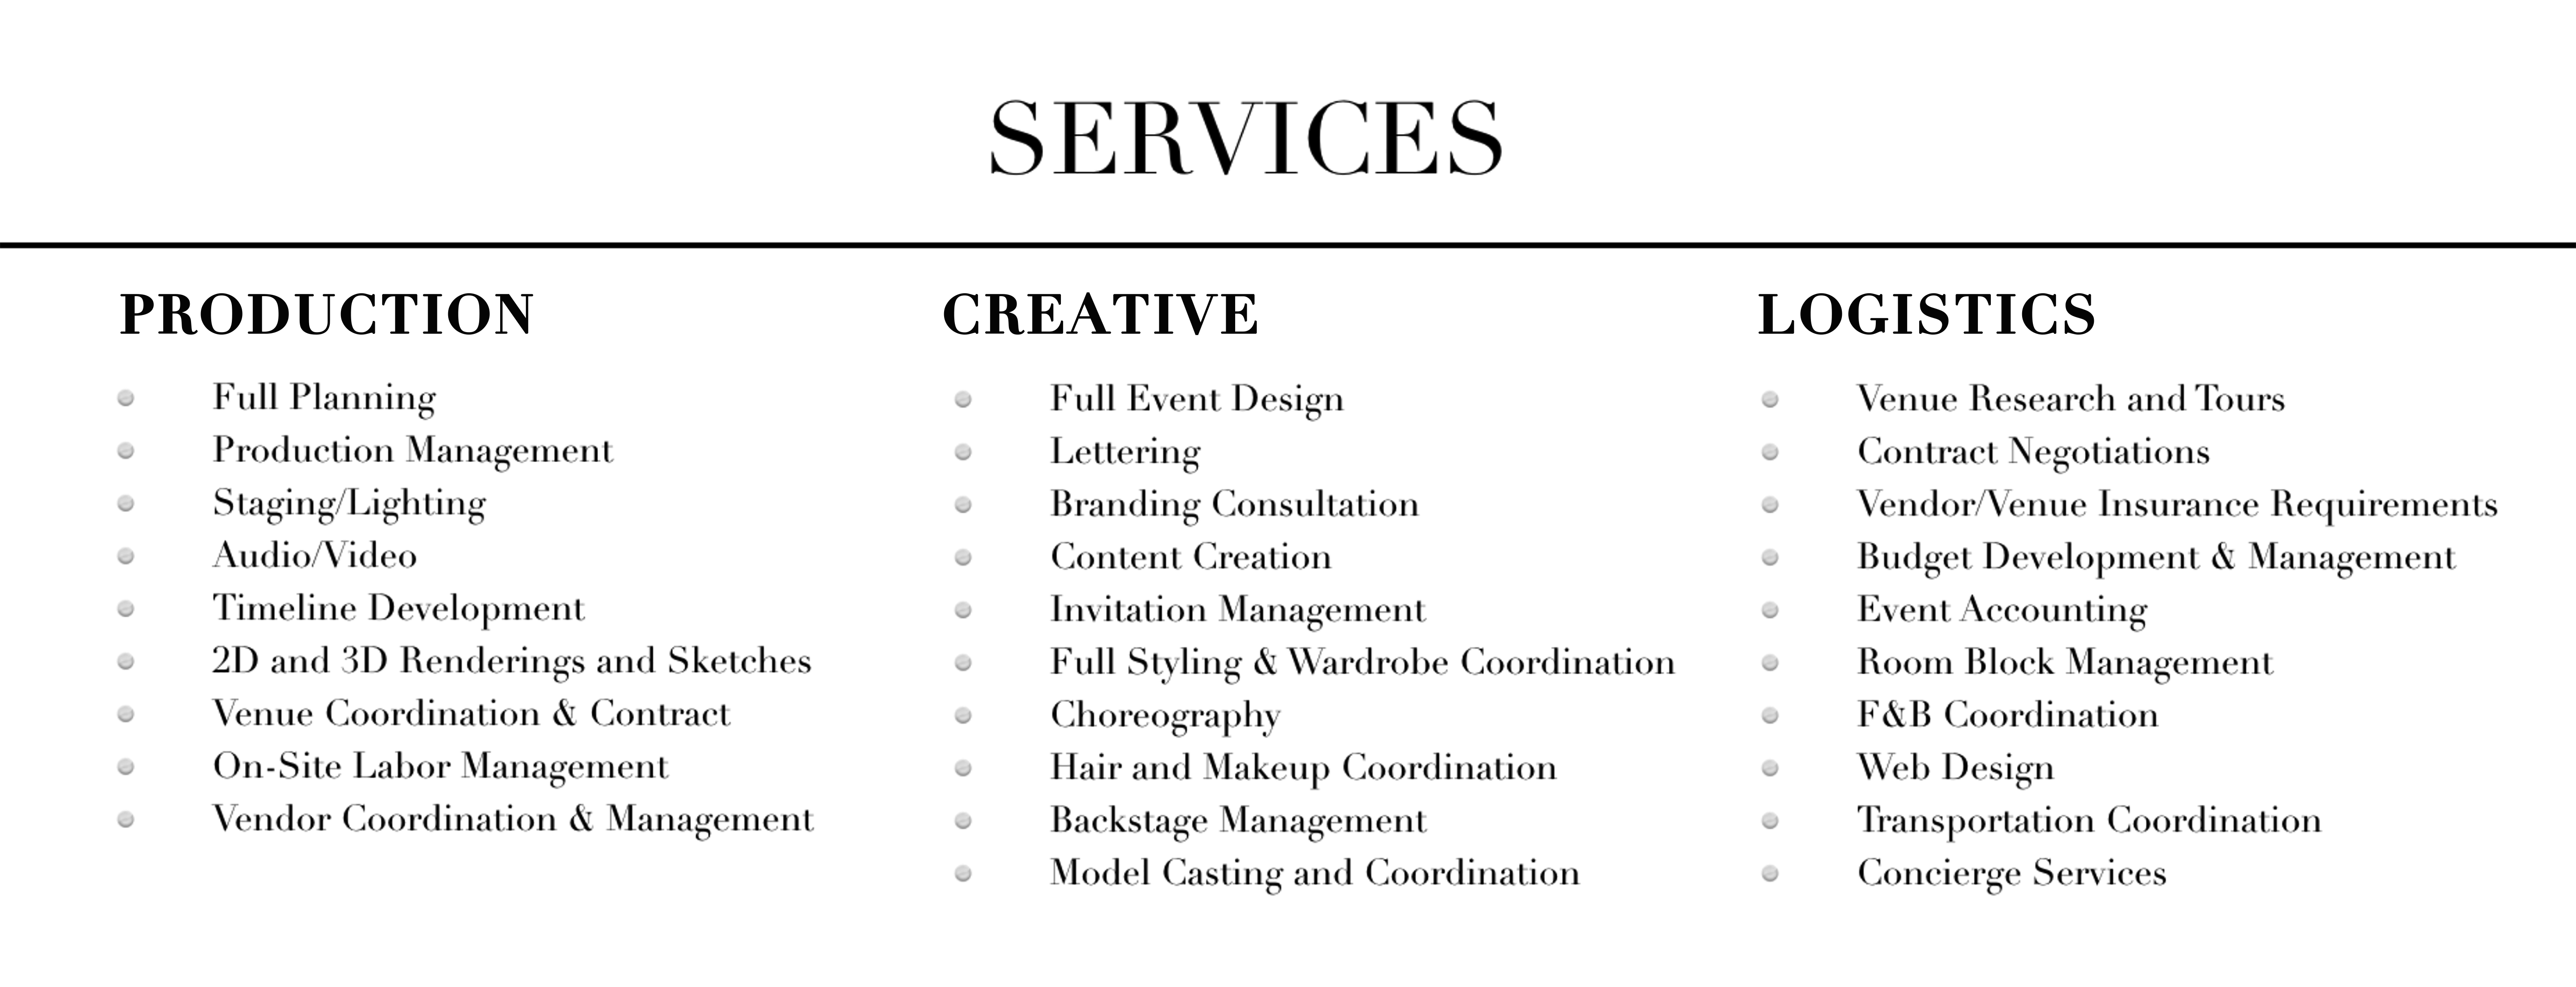 planning-services-miami-lse